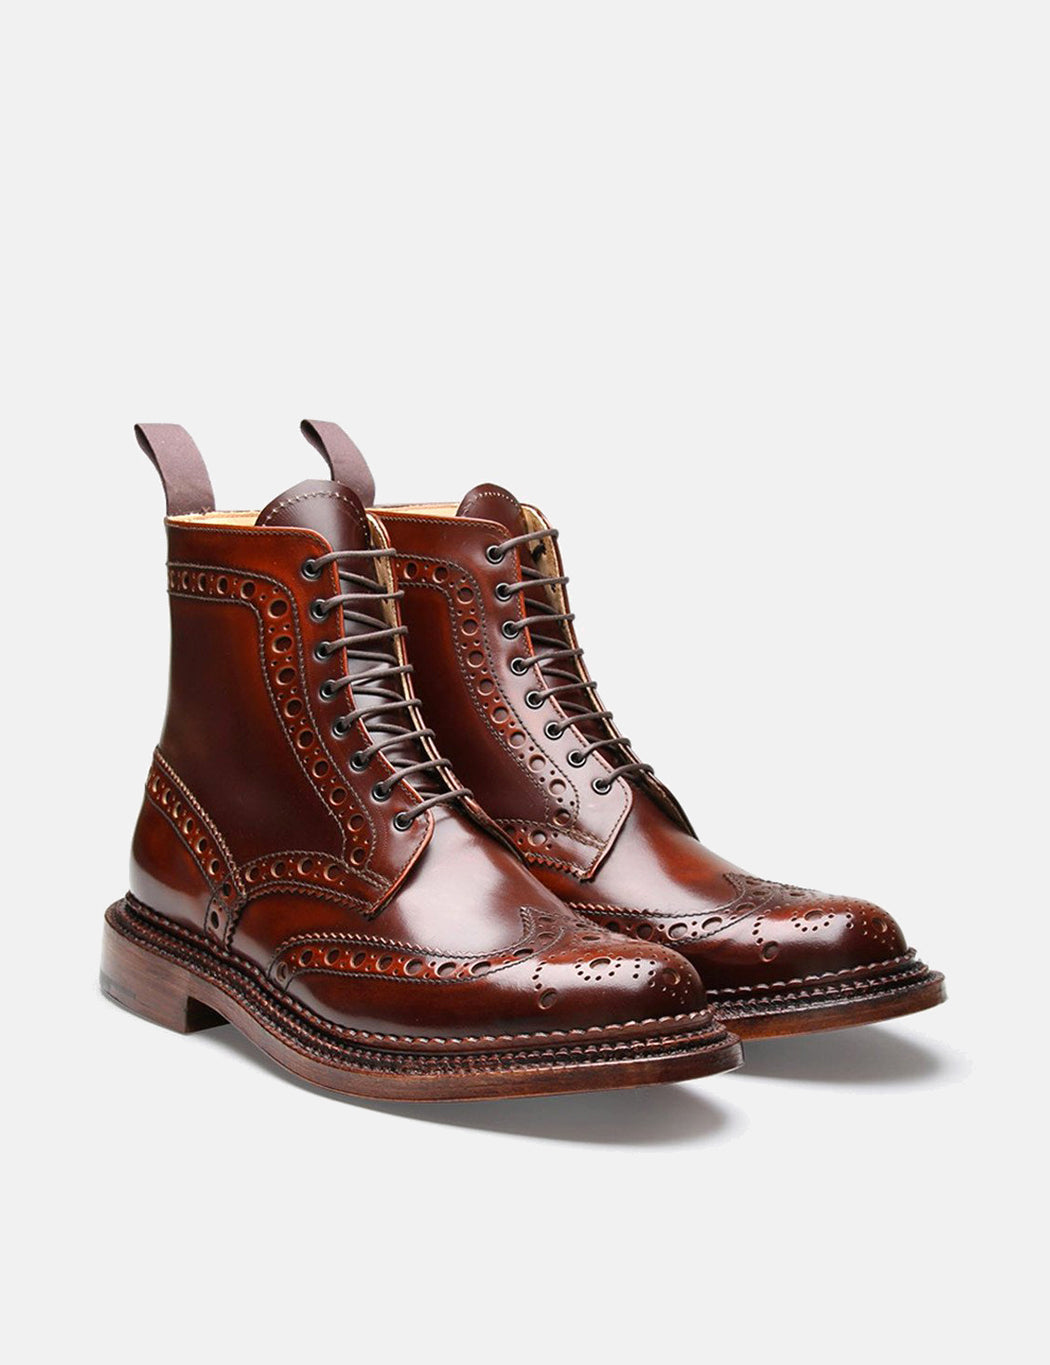 Grenson Fred Triple Welt Boot - Mahogany - Mahogany / UK 8 : US 9 : EU 42